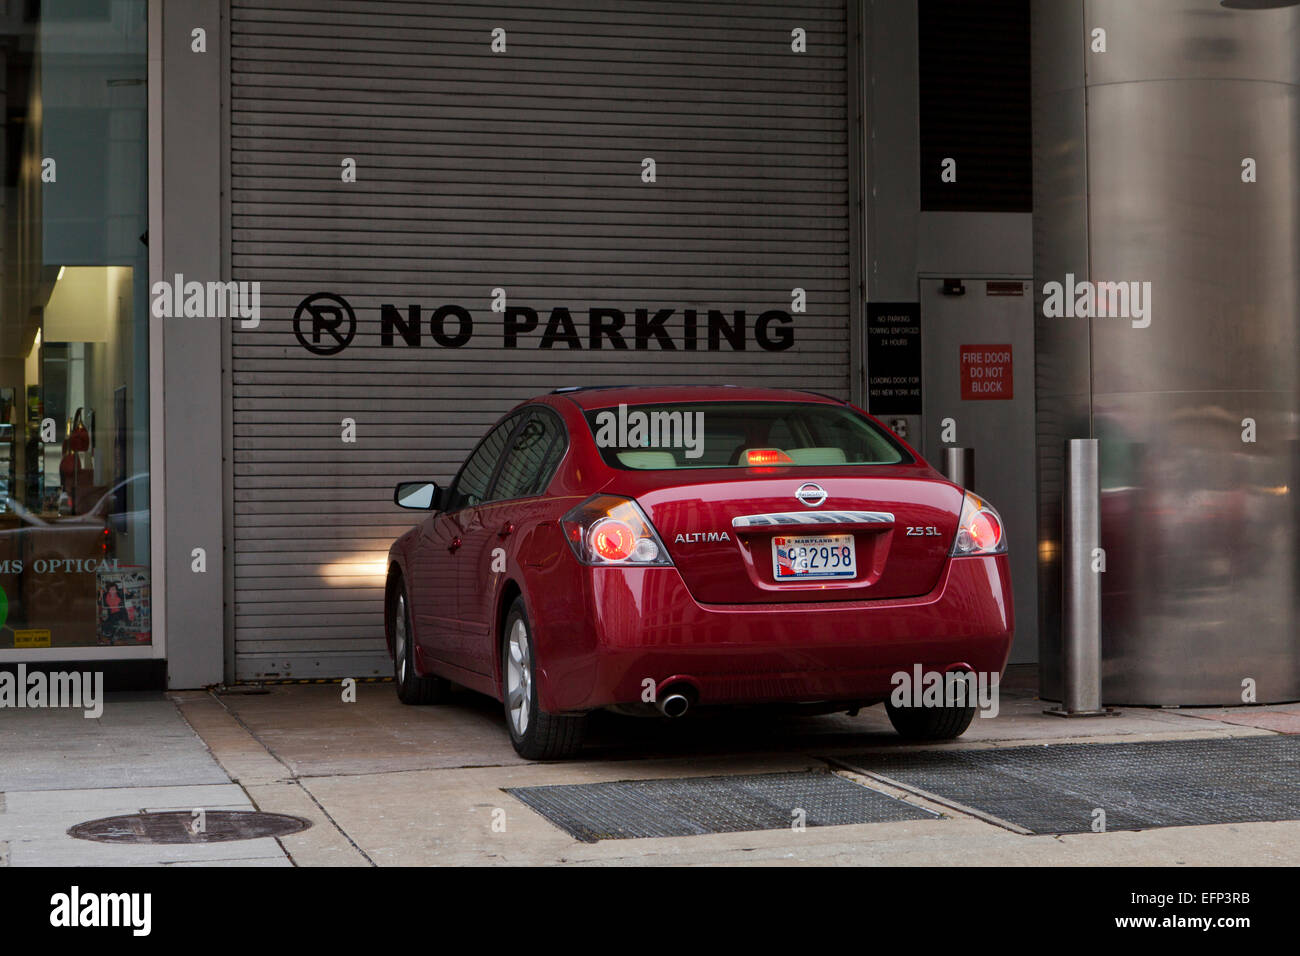 Car parked under no parking sign - USA - Stock Image